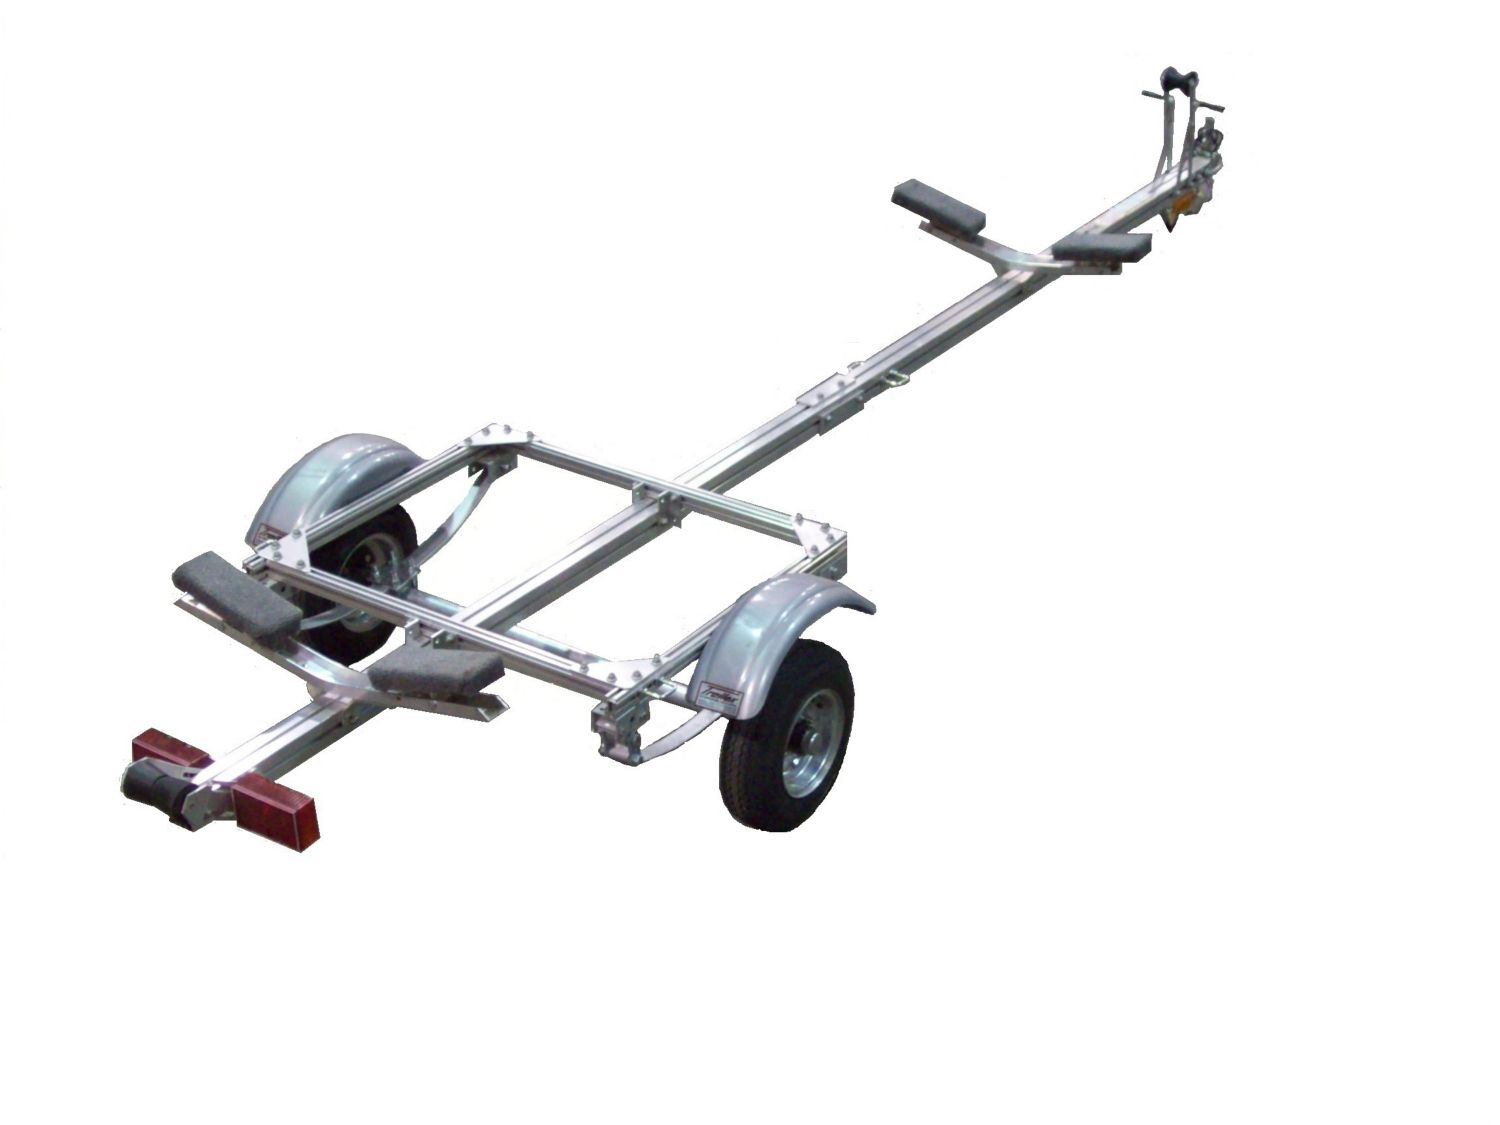 Trailex Ultra Light Duty Boat Trailer with Leaf Springs - SUT-220-S